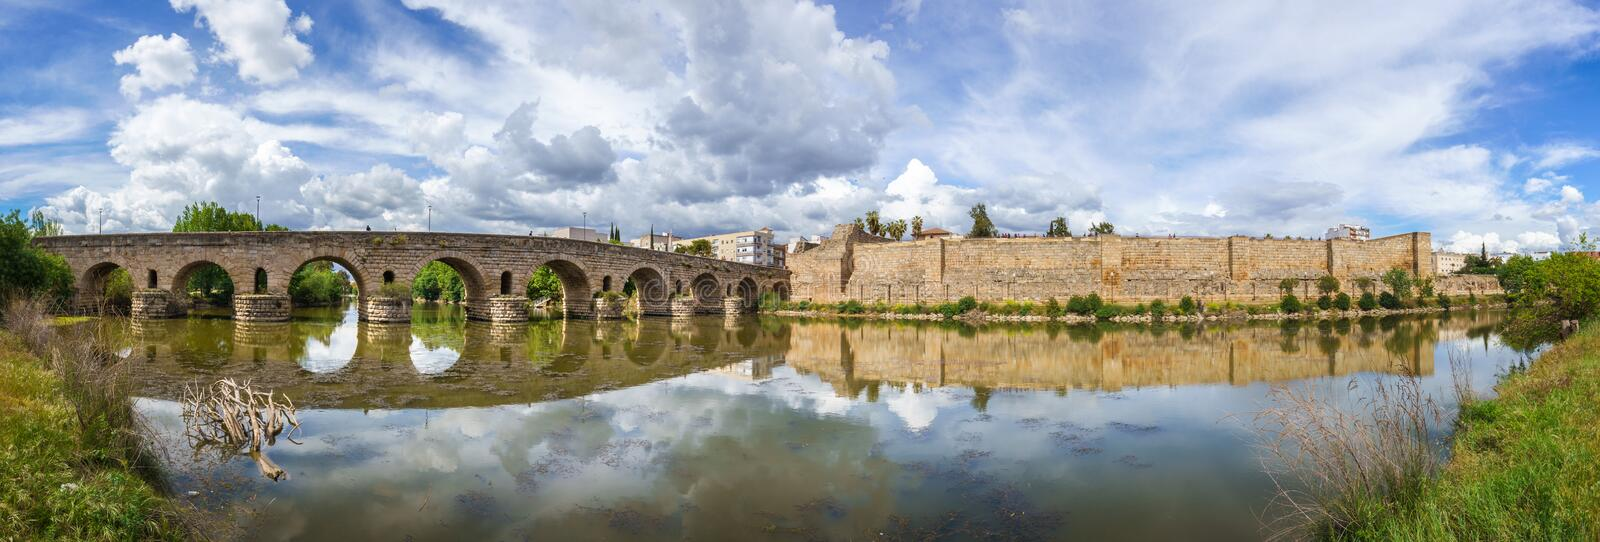 View of the Roman bridge of Merida with its reflection on the Guadiana river. royalty free stock photo